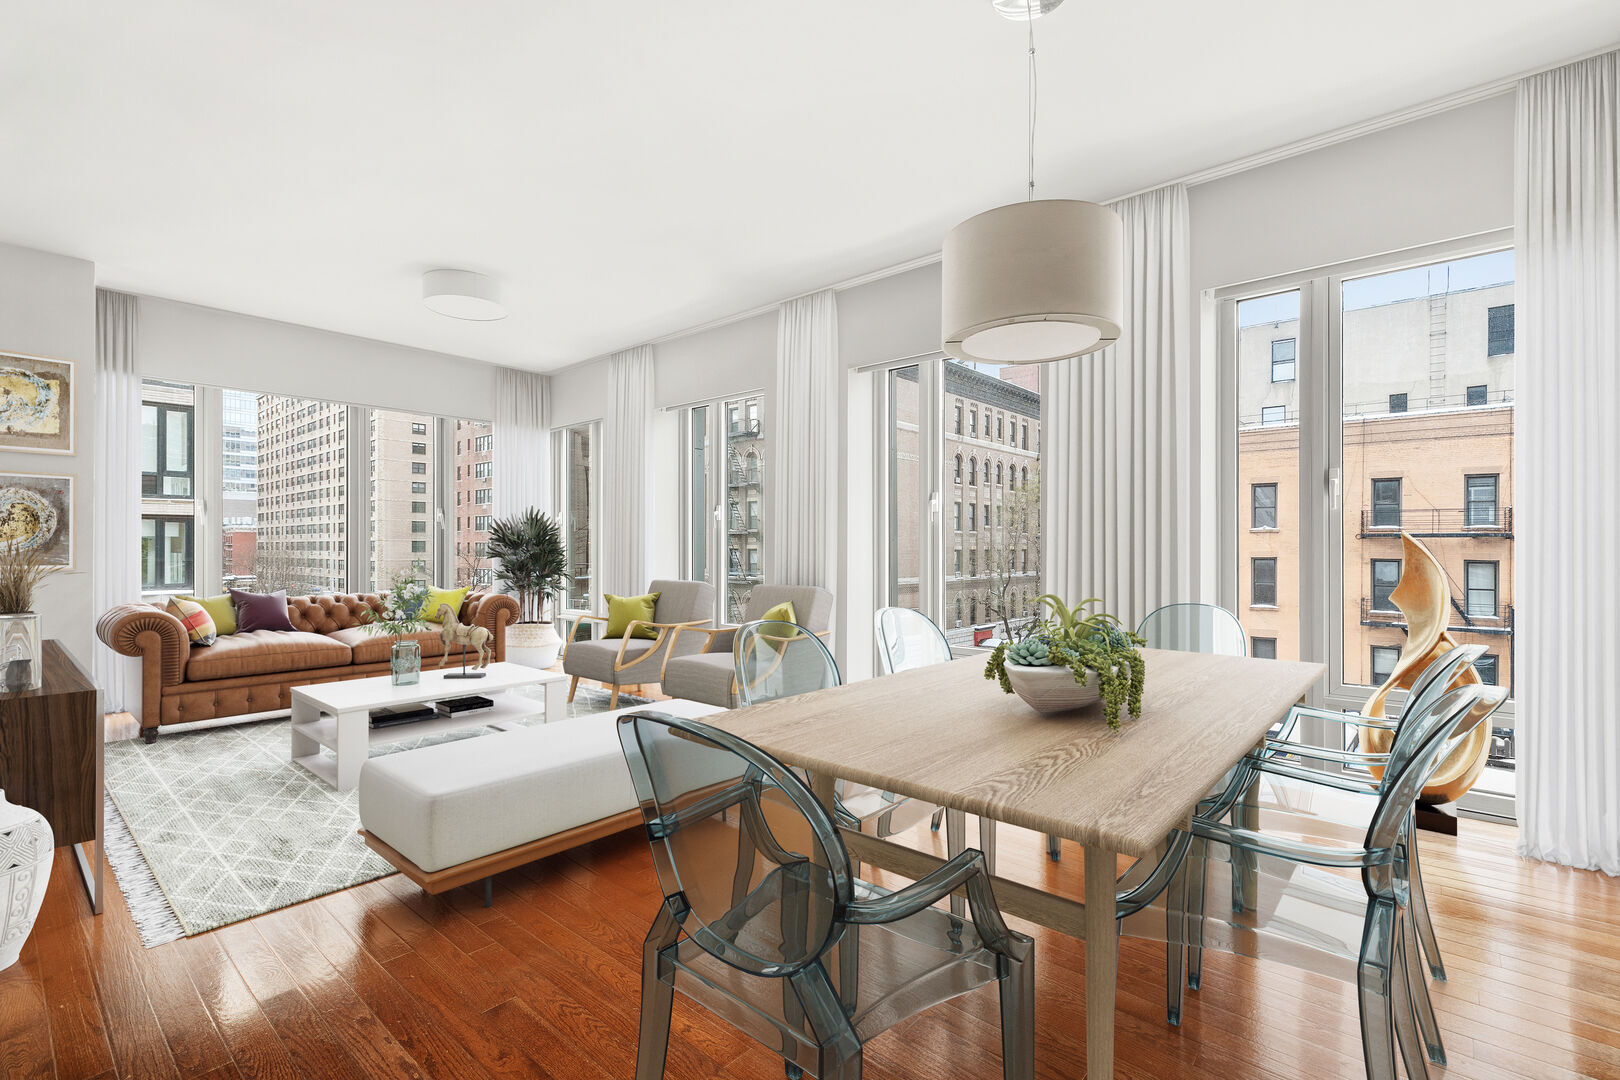 Apartment for sale at 303 East 77th Street, Apt 4-AB